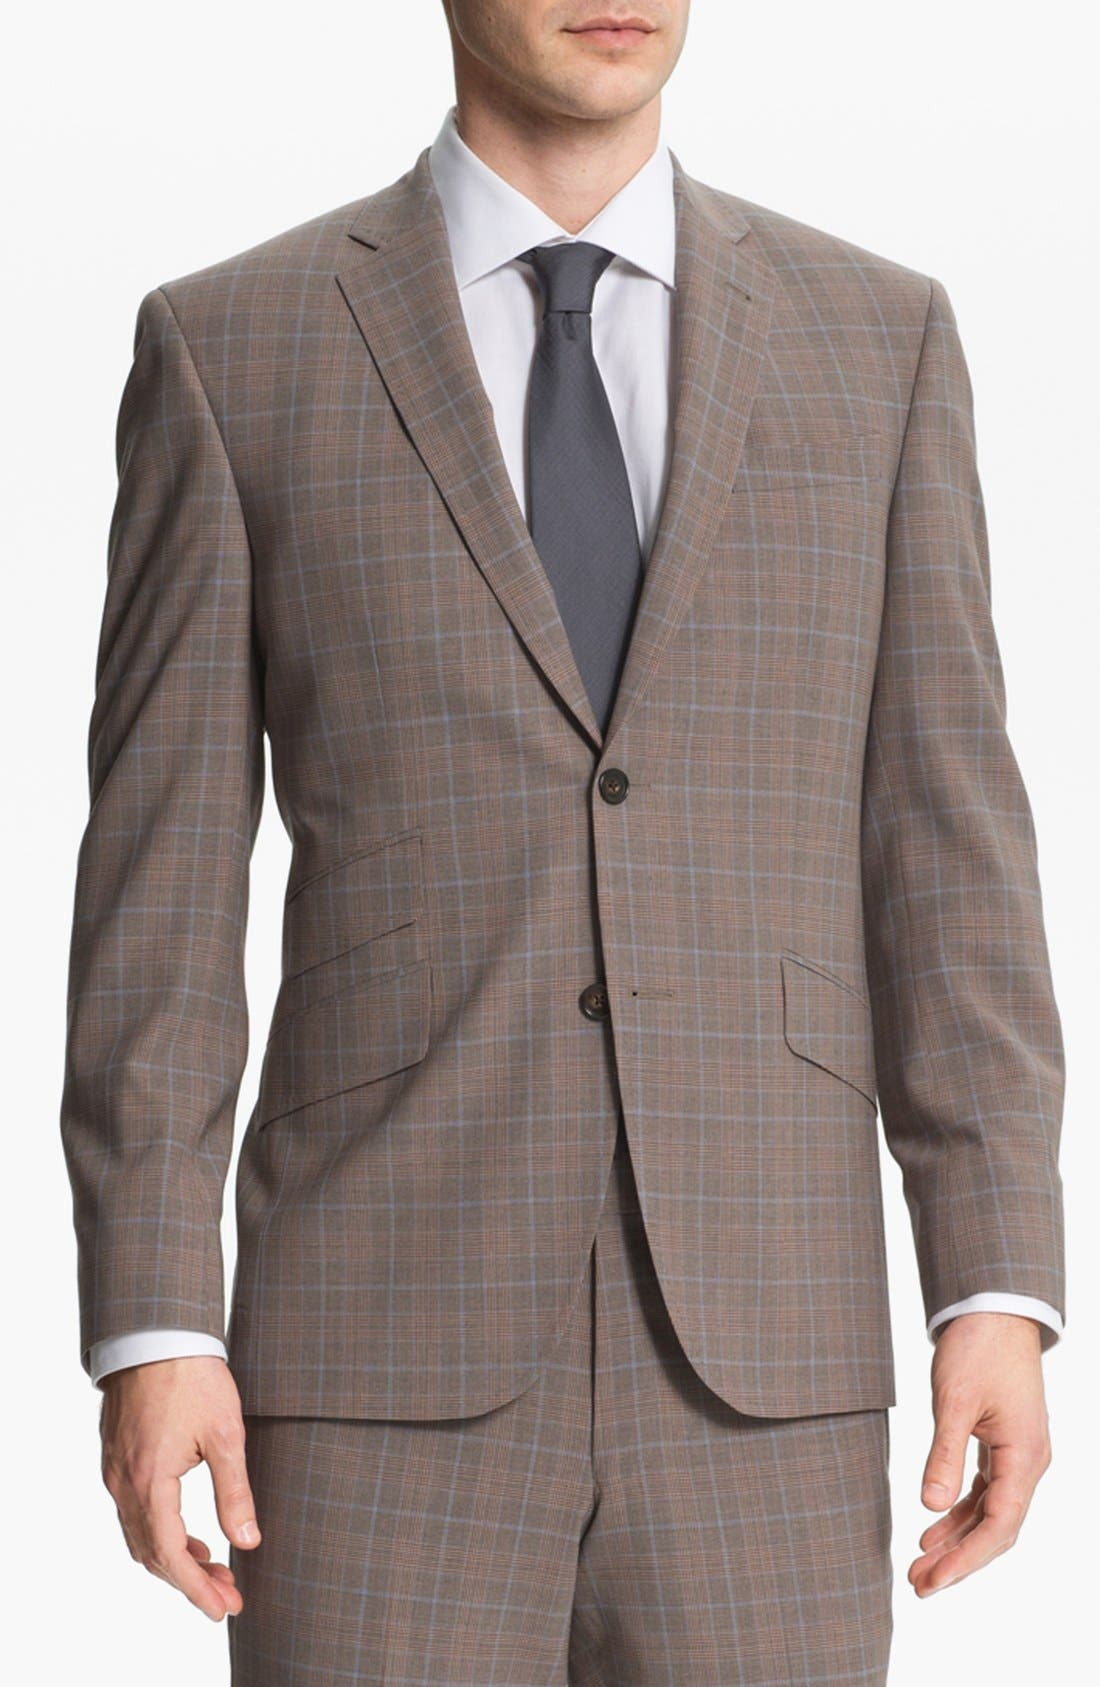 Alternate Image 1 Selected - Ted Baker London Trim Fit Plaid Suit